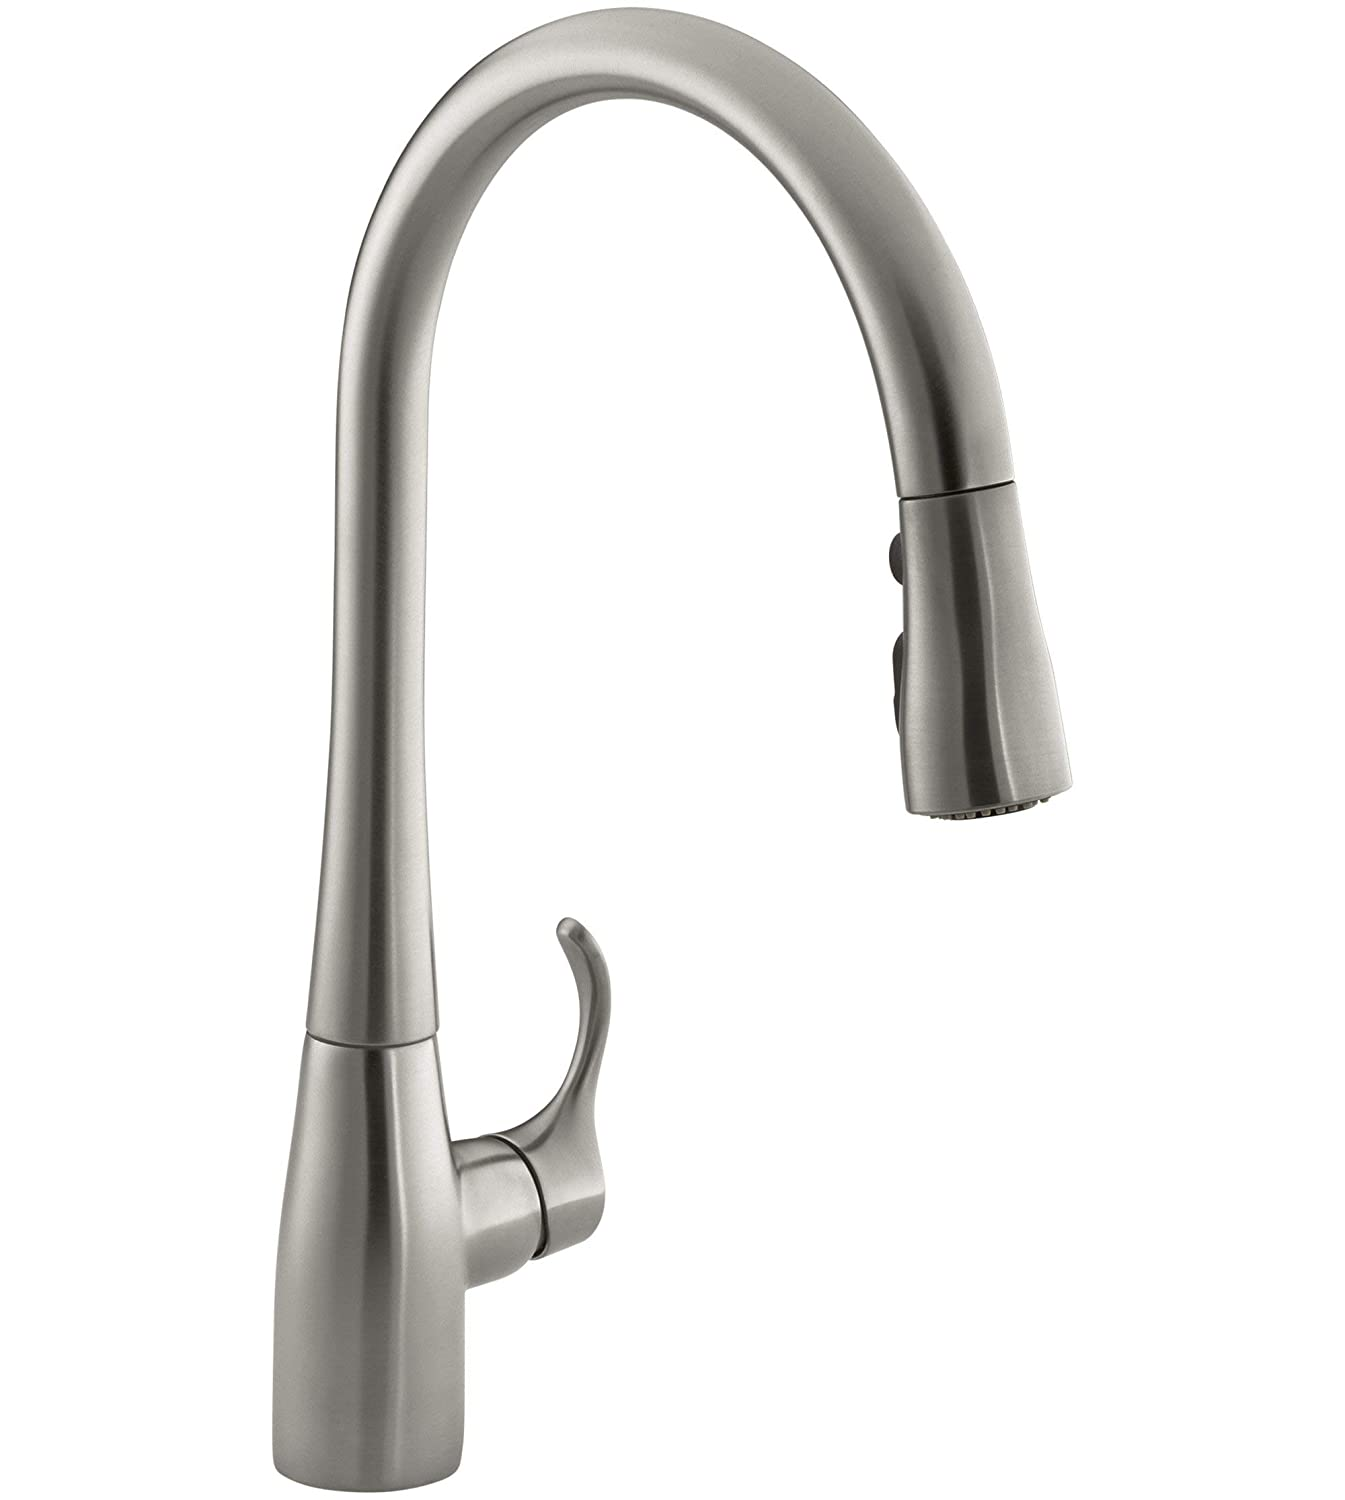 KOHLER K-596-VS Simplice Single-hole Pull-down Kitchen Faucet, Vibrant Stainless (Certified Refurbished)